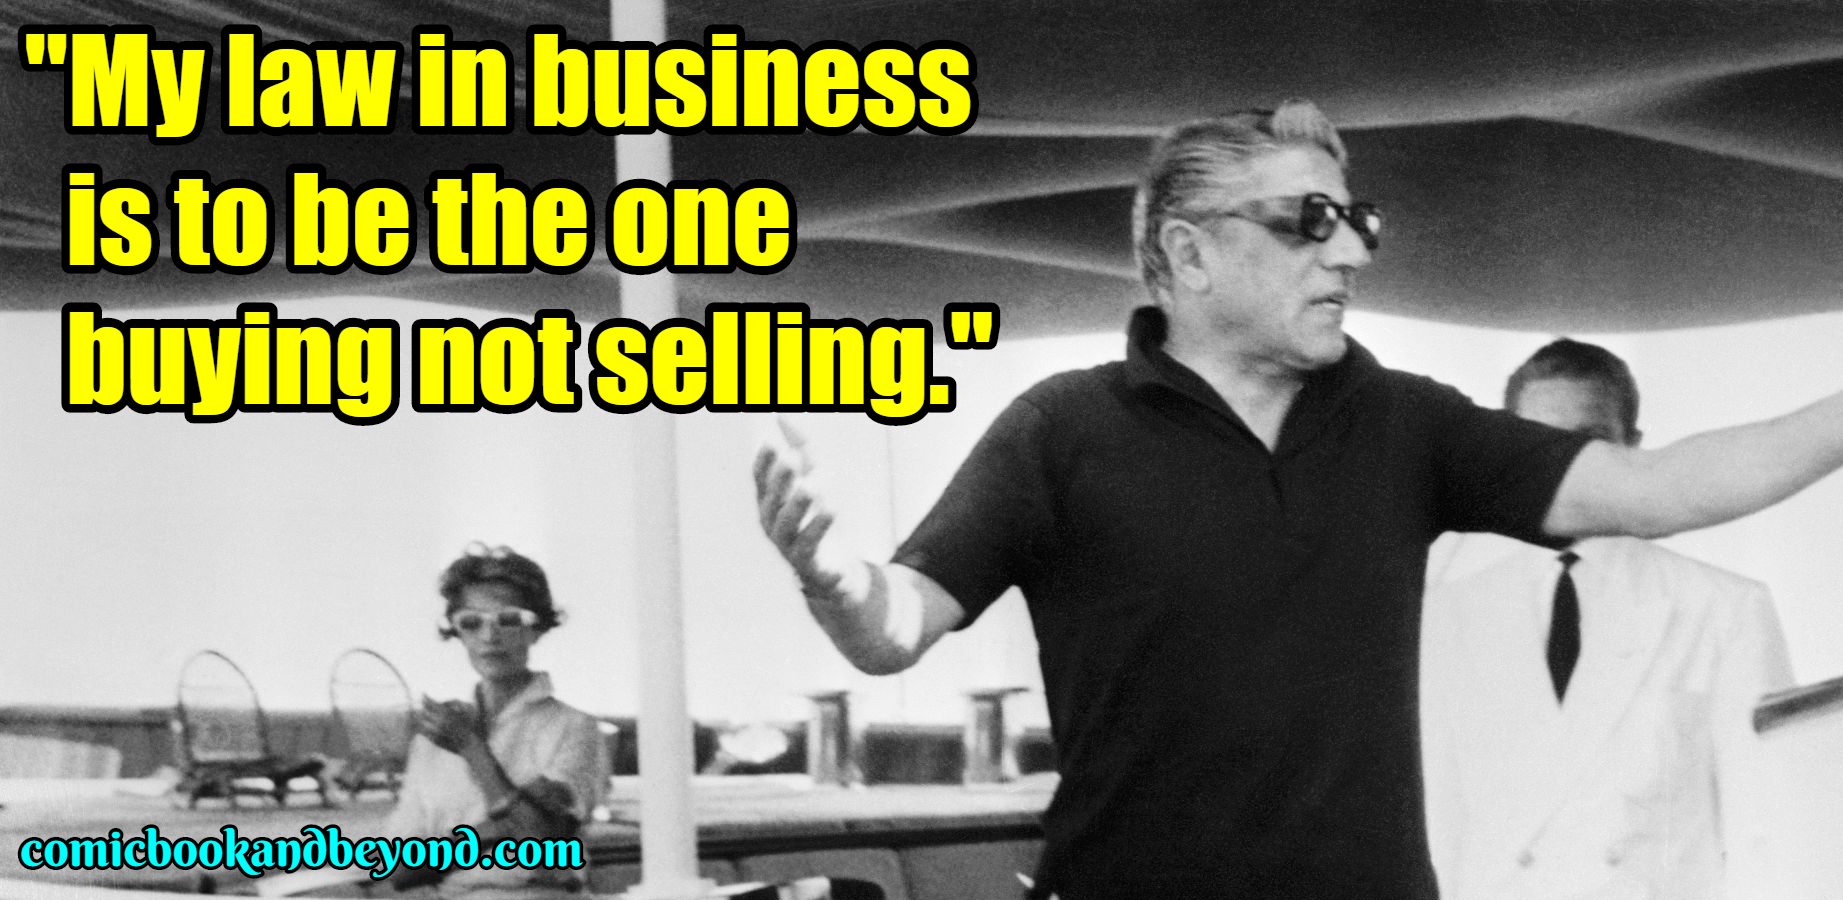 Aristotle Onassis Quotes Quotesgram: 100+ Aristotle Onassis Quotes That Will Make You The Best